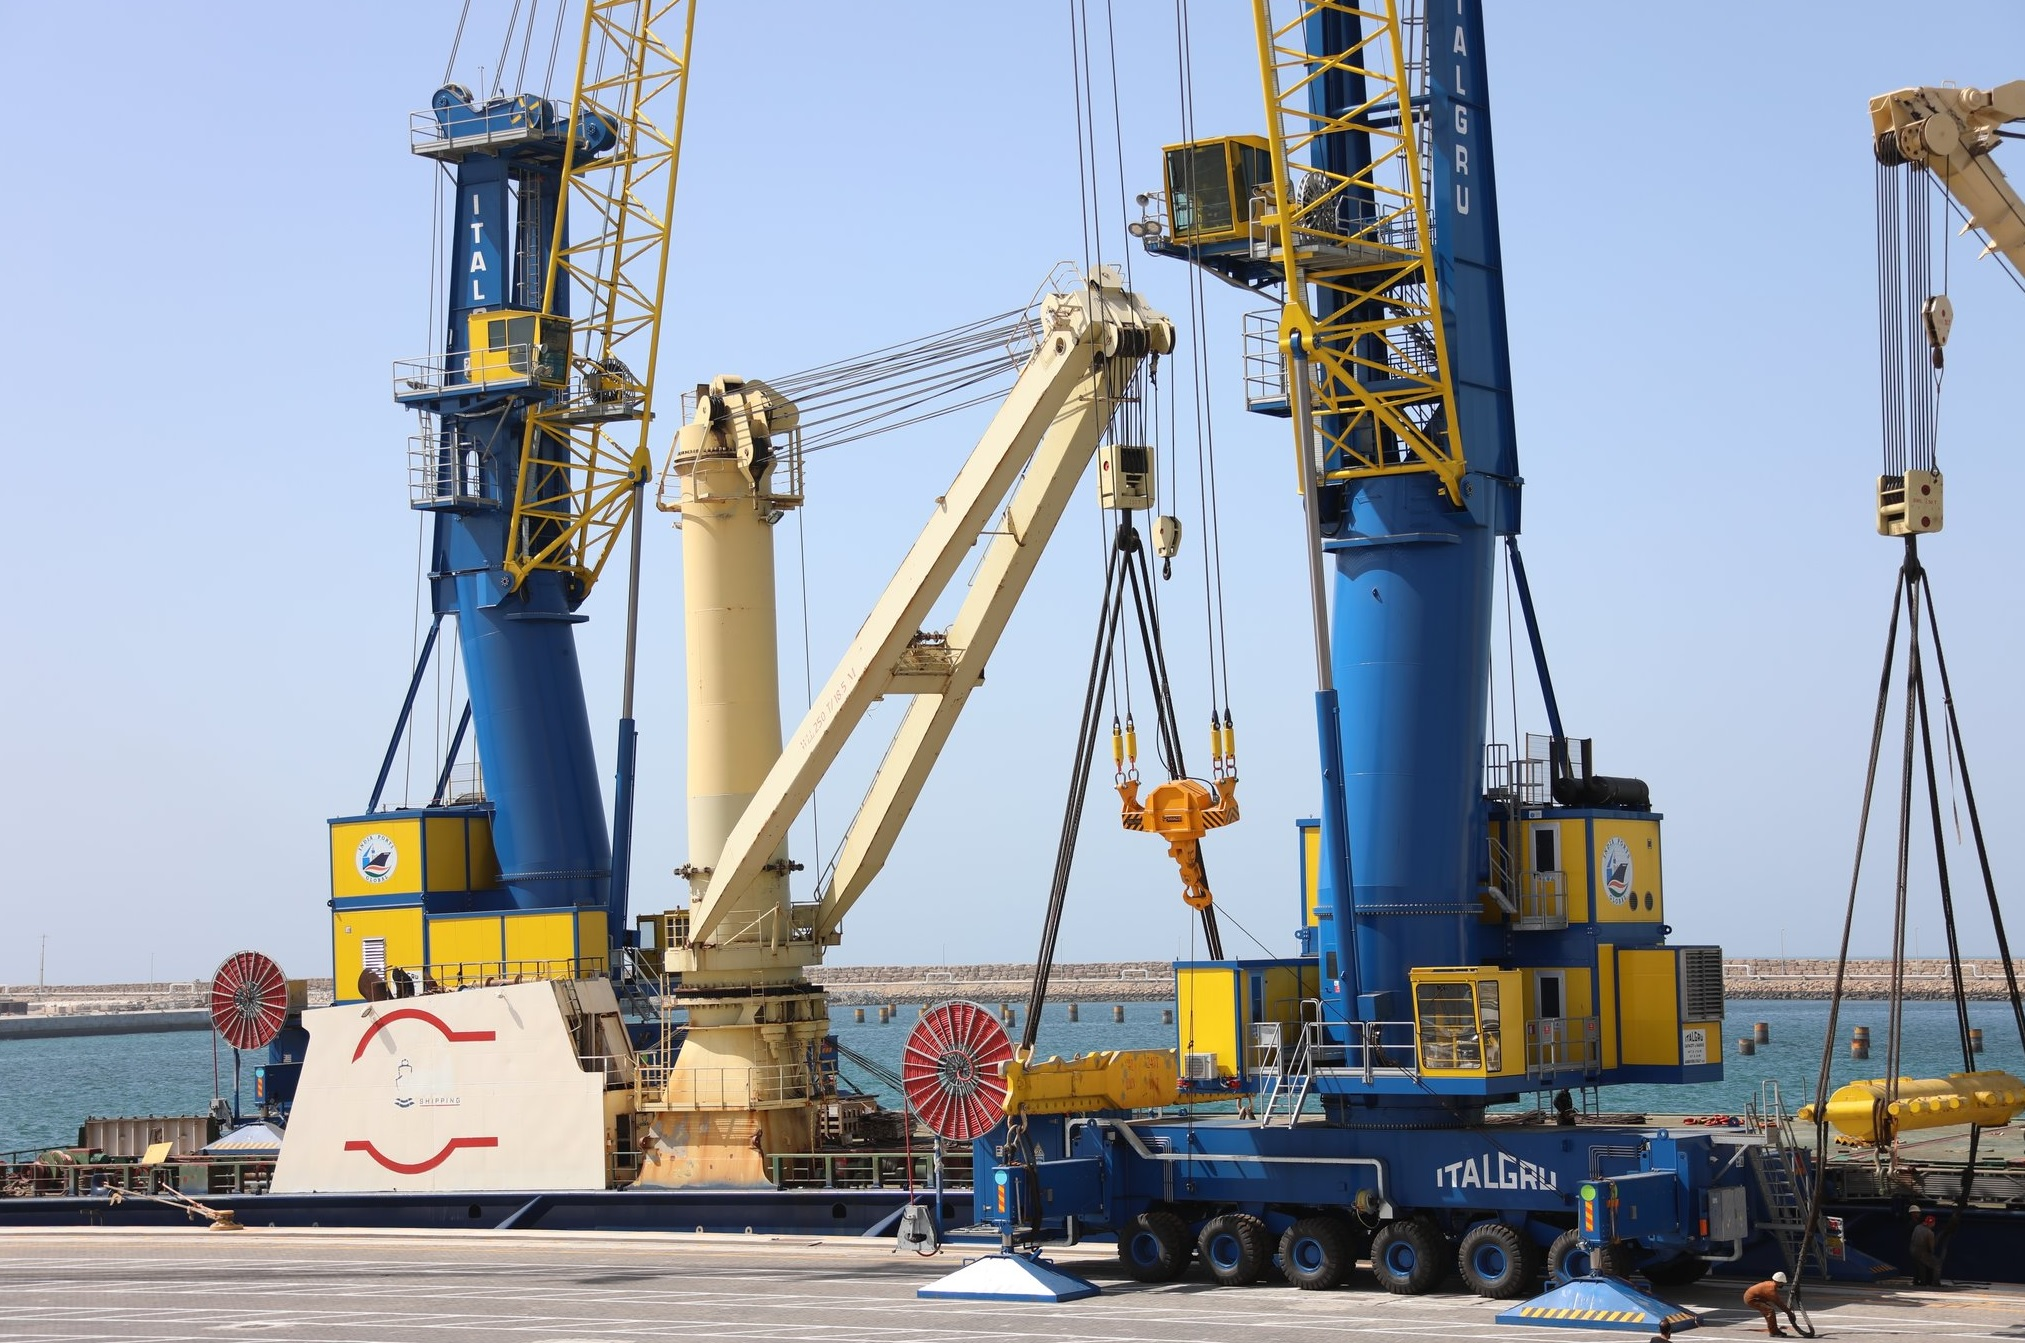 India supplies two Mobile Harbour Cranes each weighing 100 tons to Iran